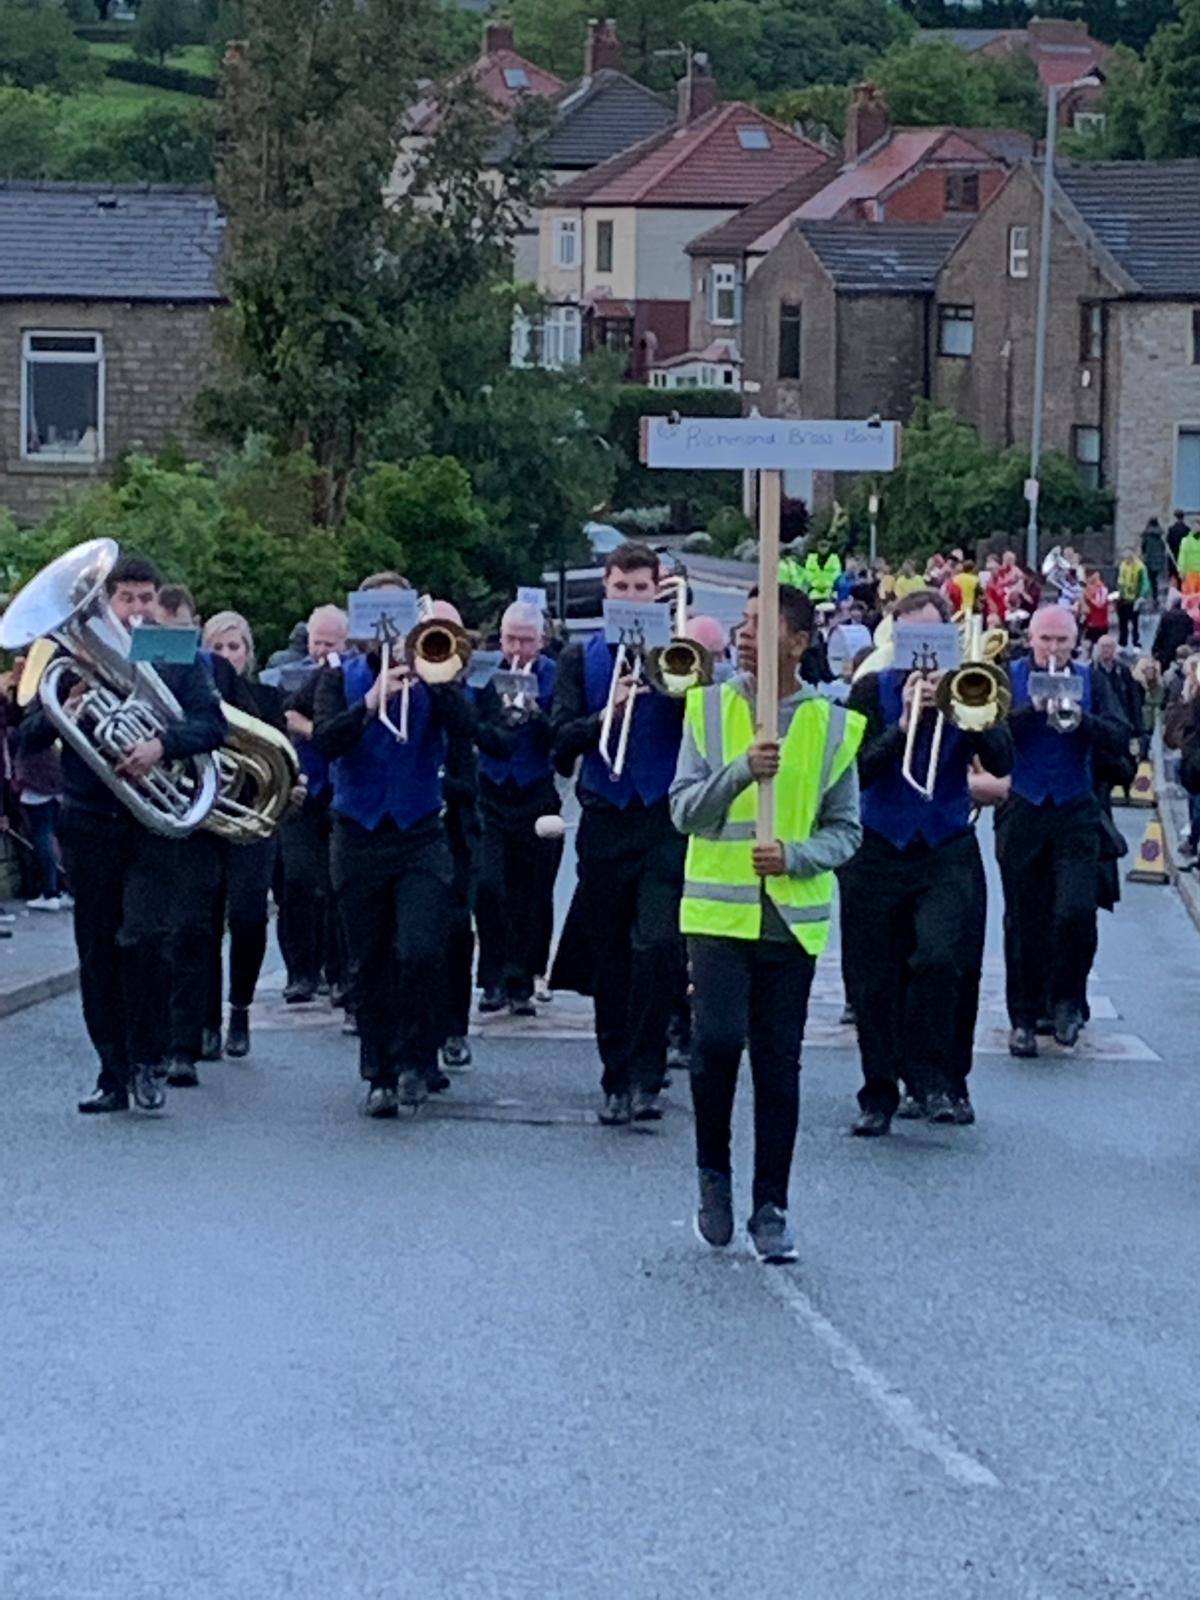 Richmond Brass Band marching up the hill at Lydgate